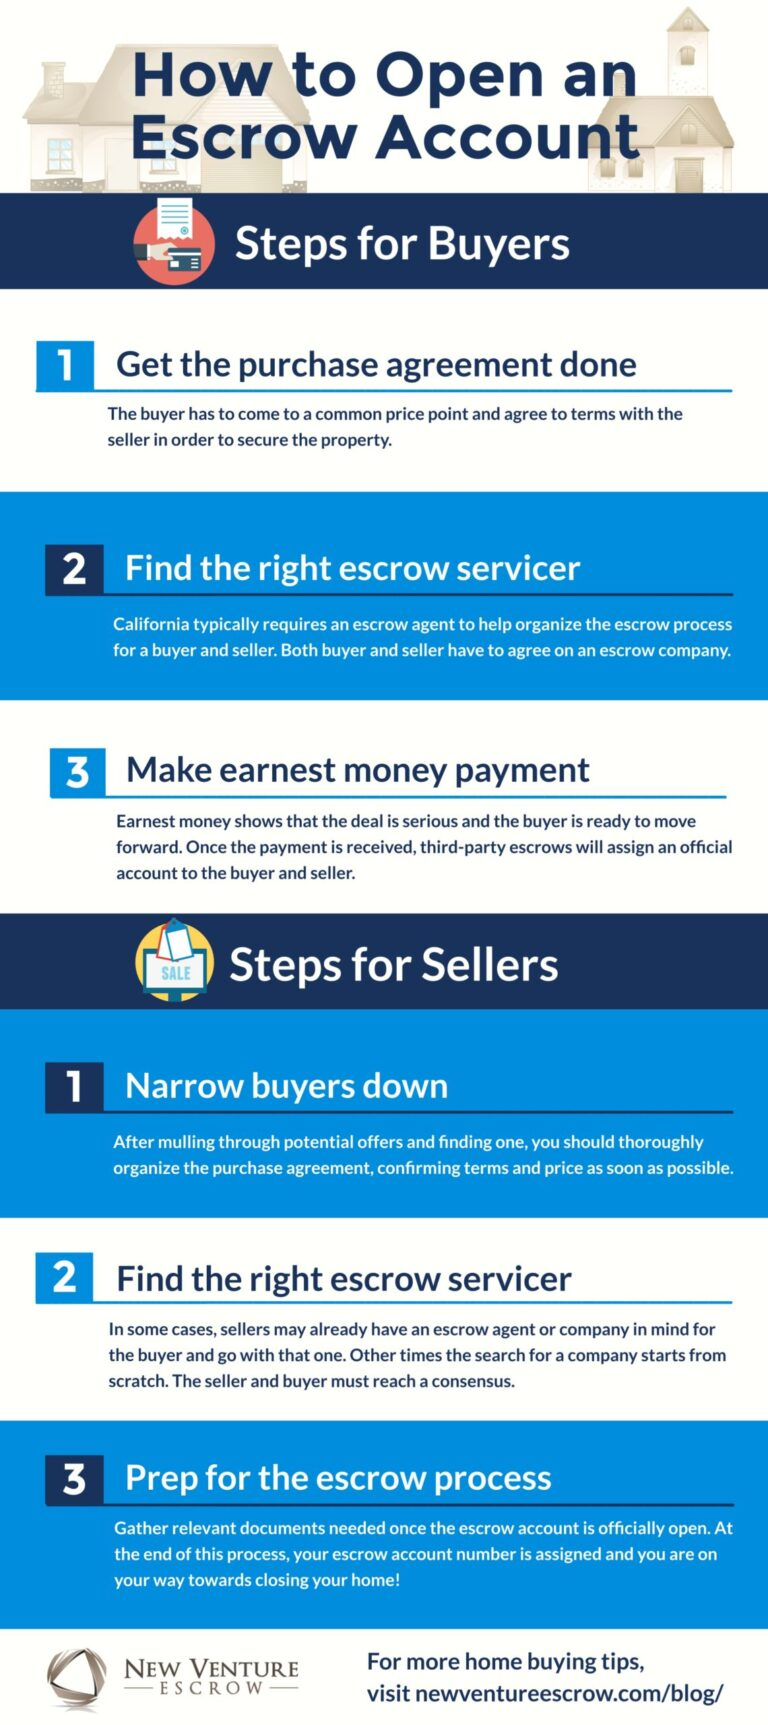 How-to-Open-an-Escrow-Account-scaled